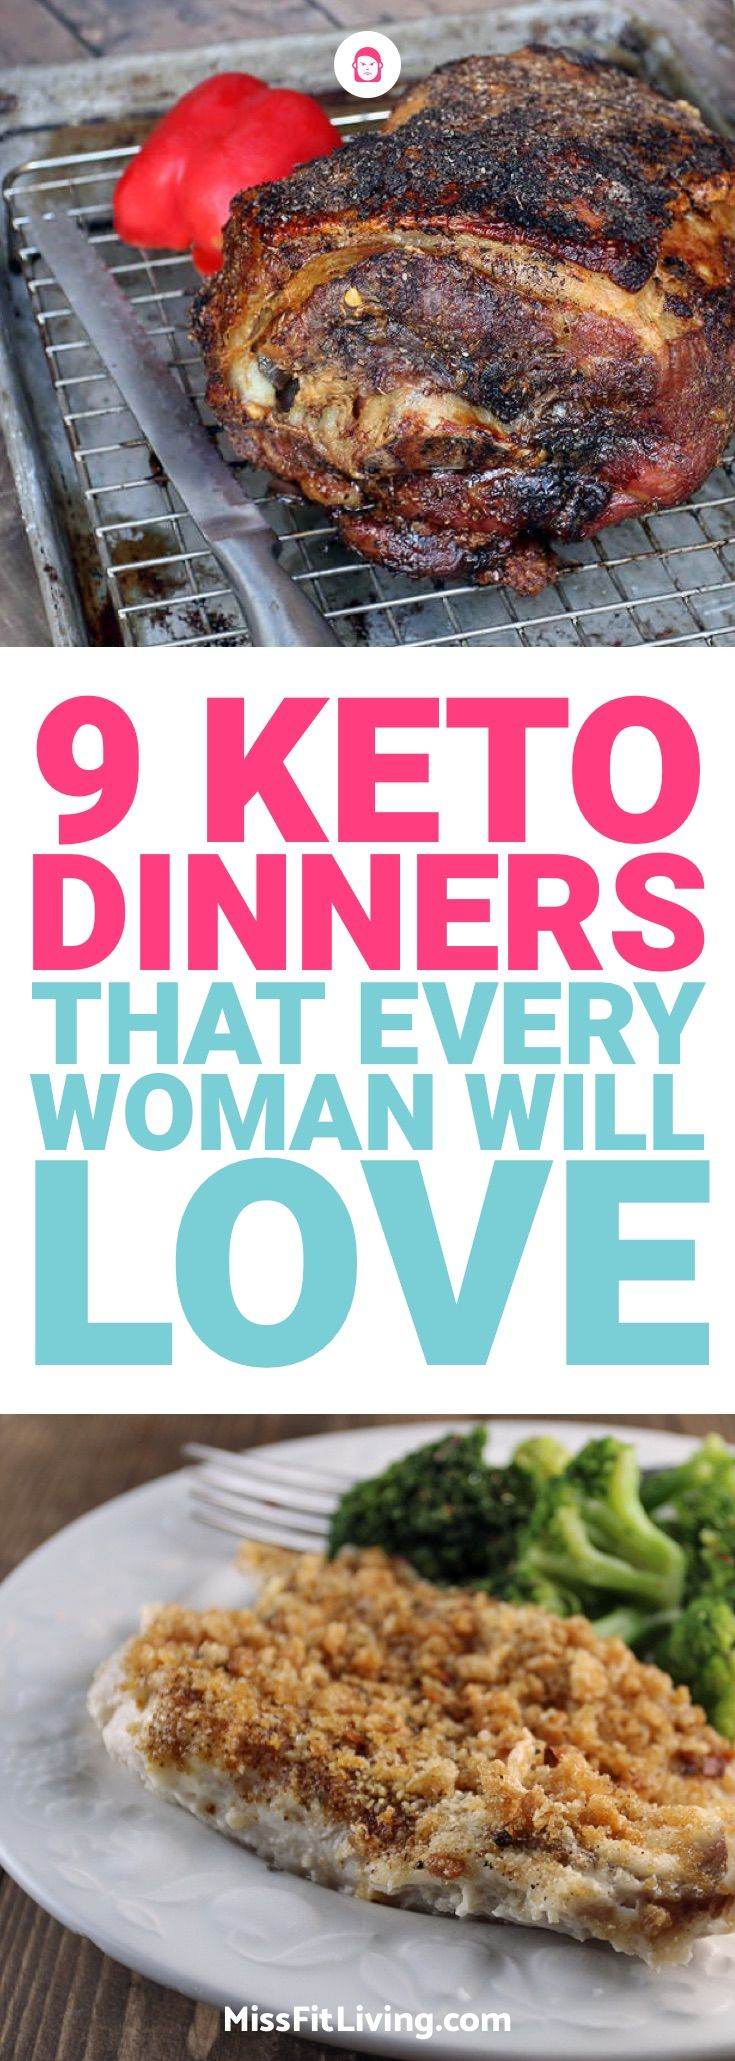 Looking for some keto dinners? Here are 9 of my favorite ketogenic diet meals to prepare at night.